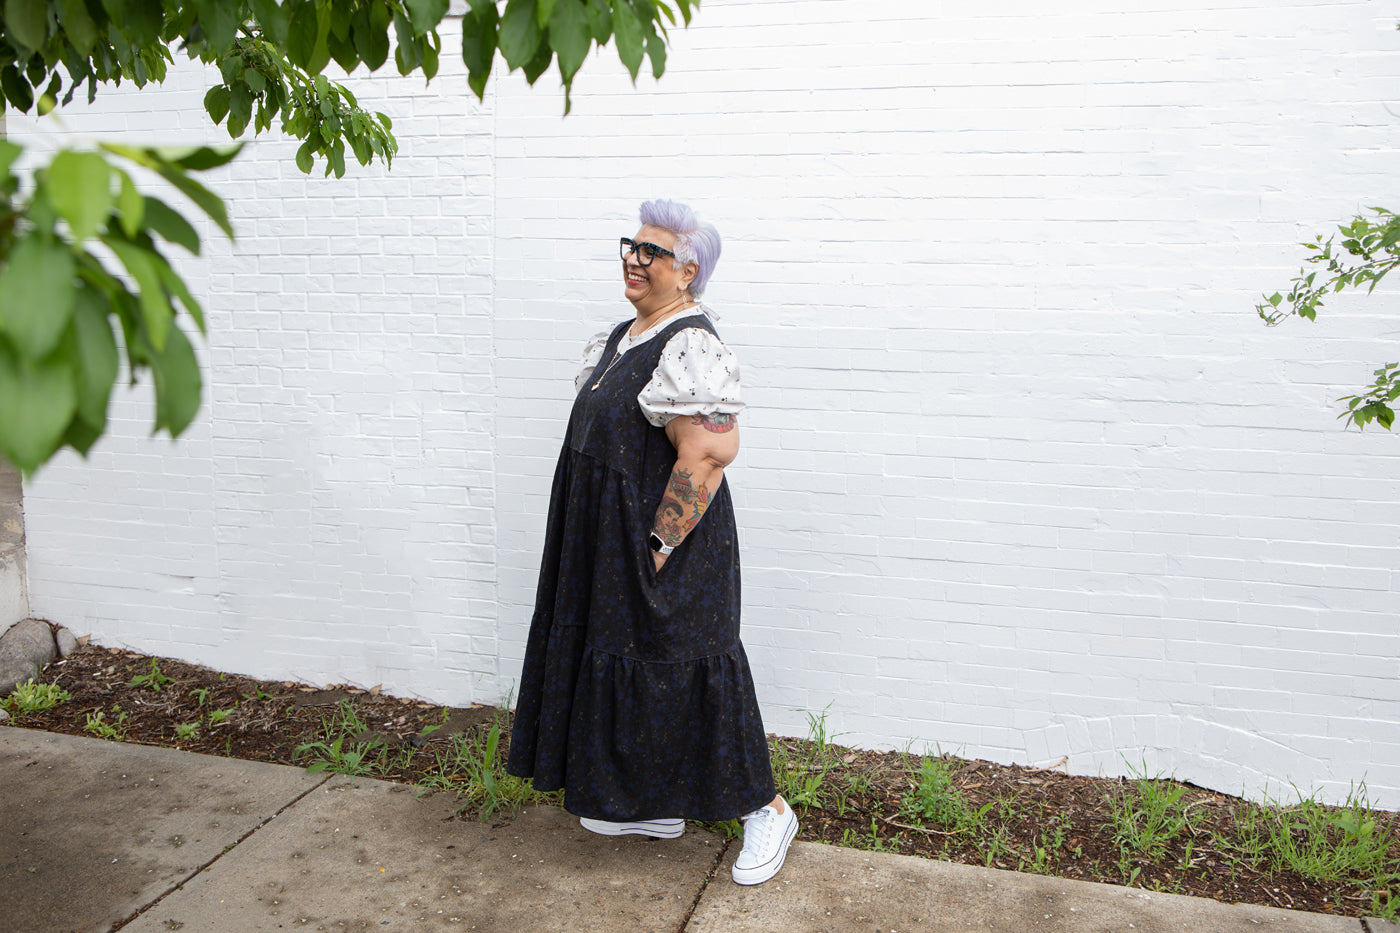 This is an image of a woman standing in front of a white brick wall wearing a black dress and white shirt